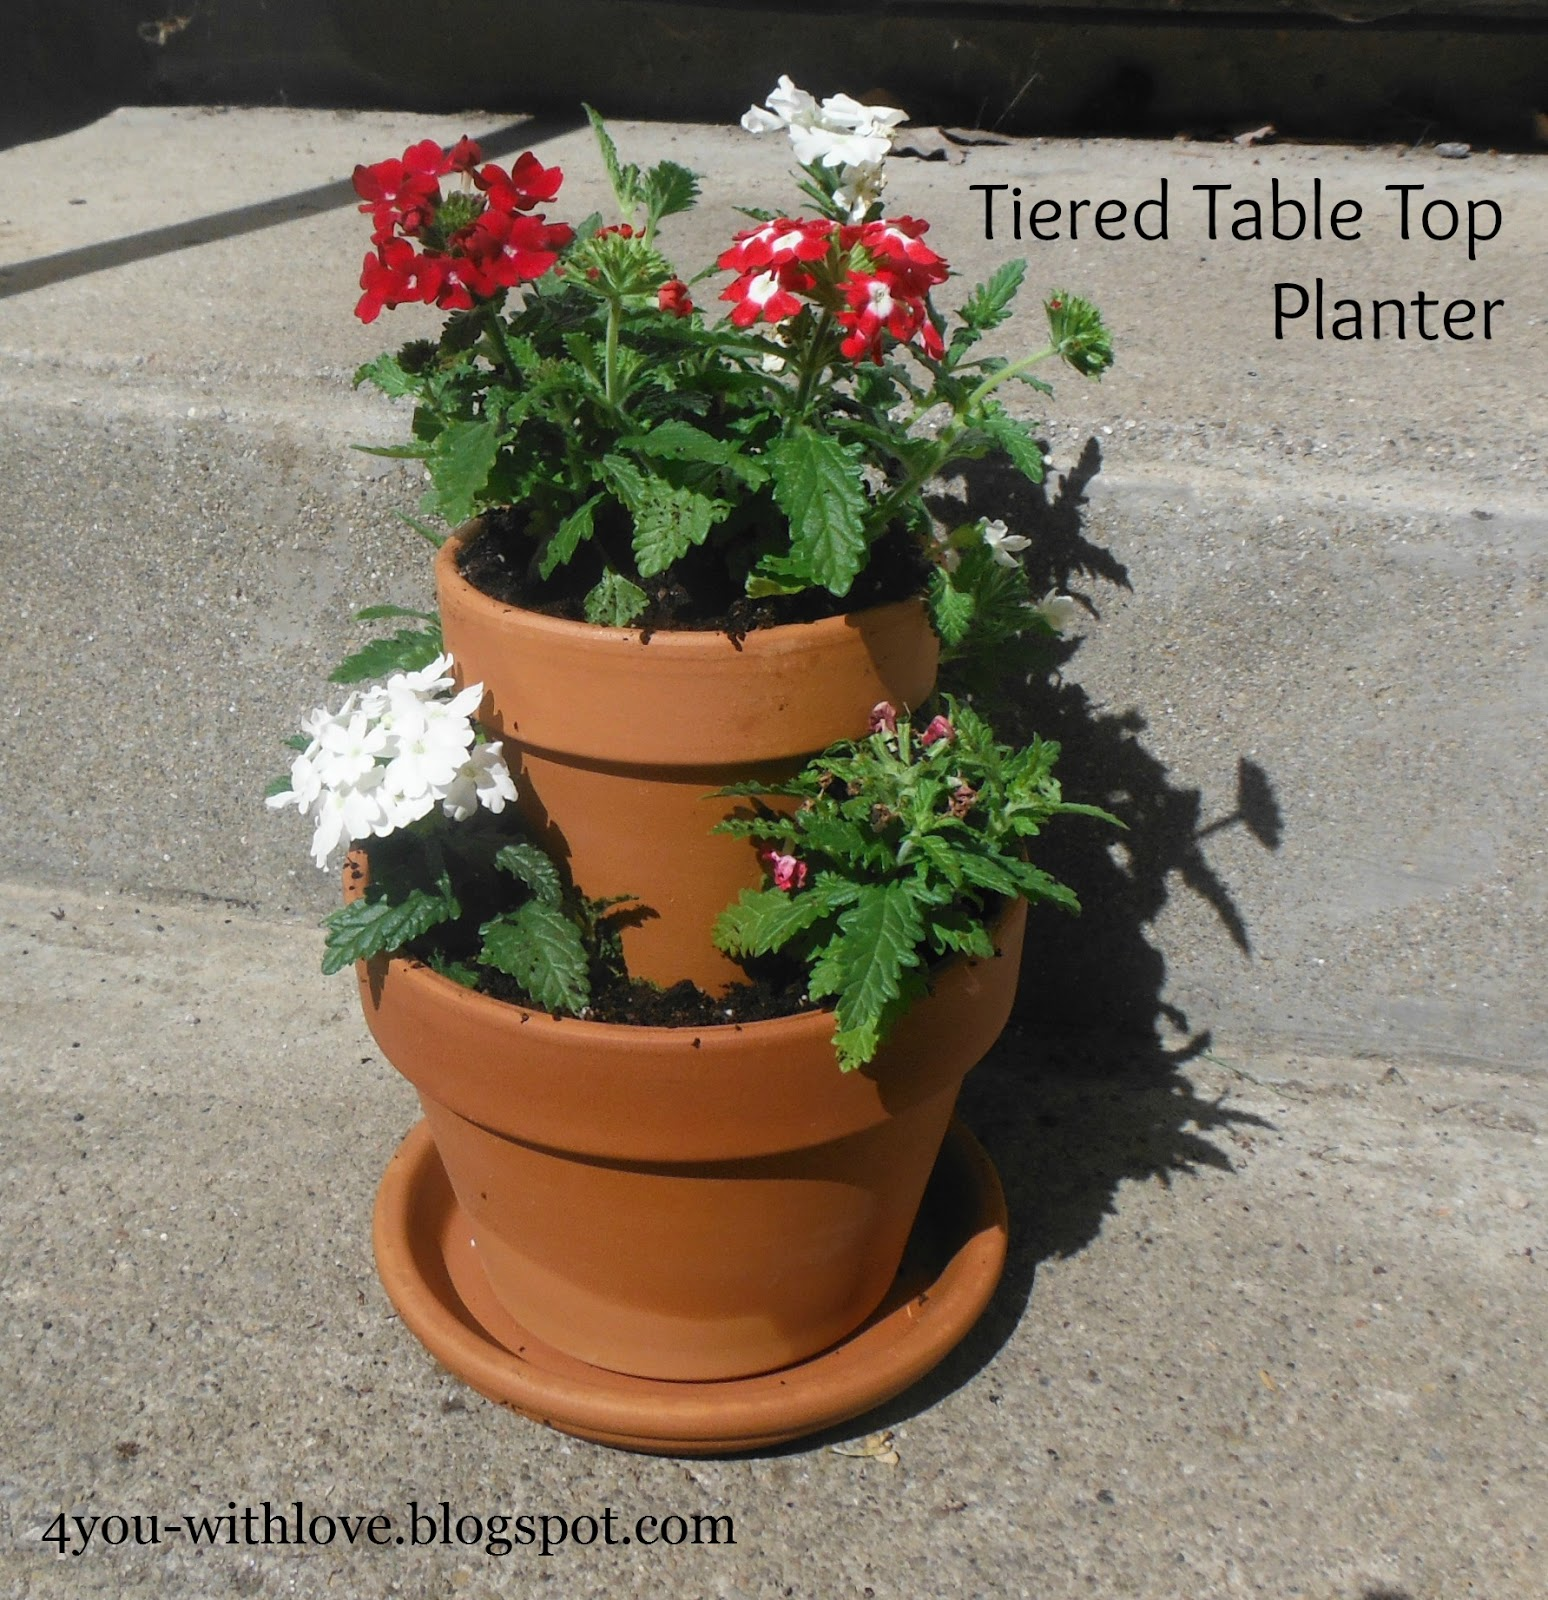 Tiered Table Top Planter – #Miracle-Gro